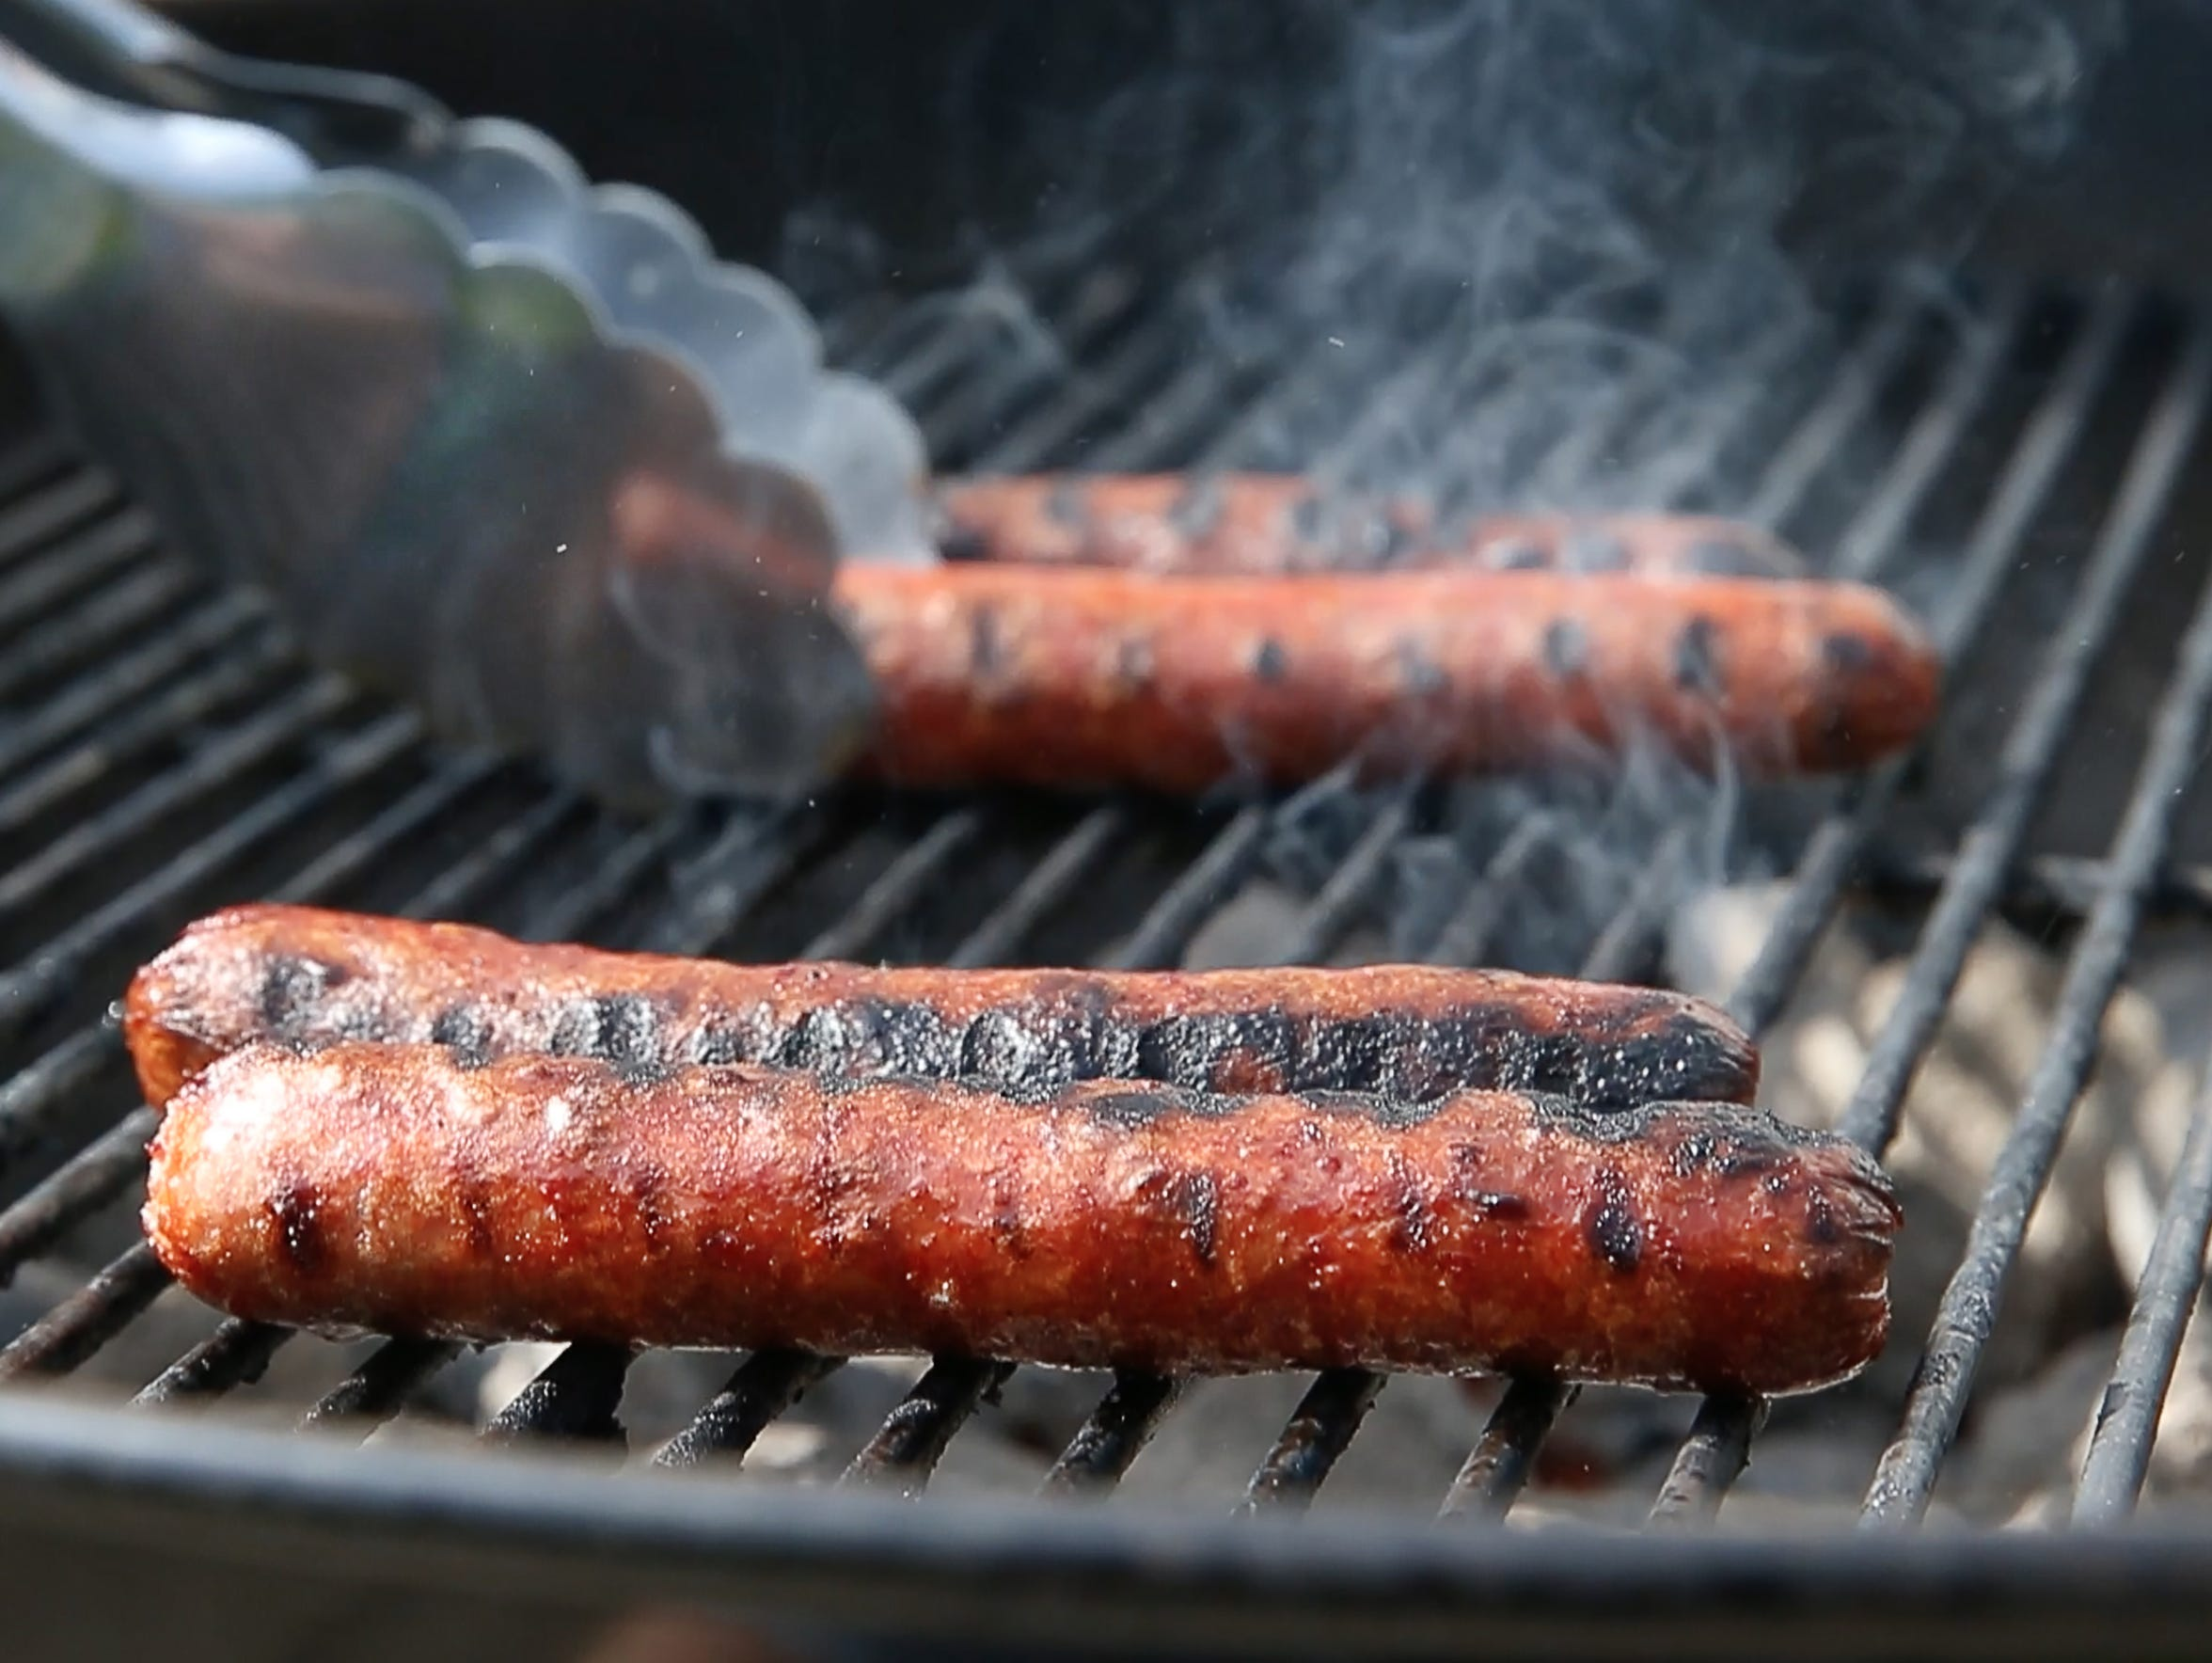 Hot dogs were grilled on a hot charcoal grill.